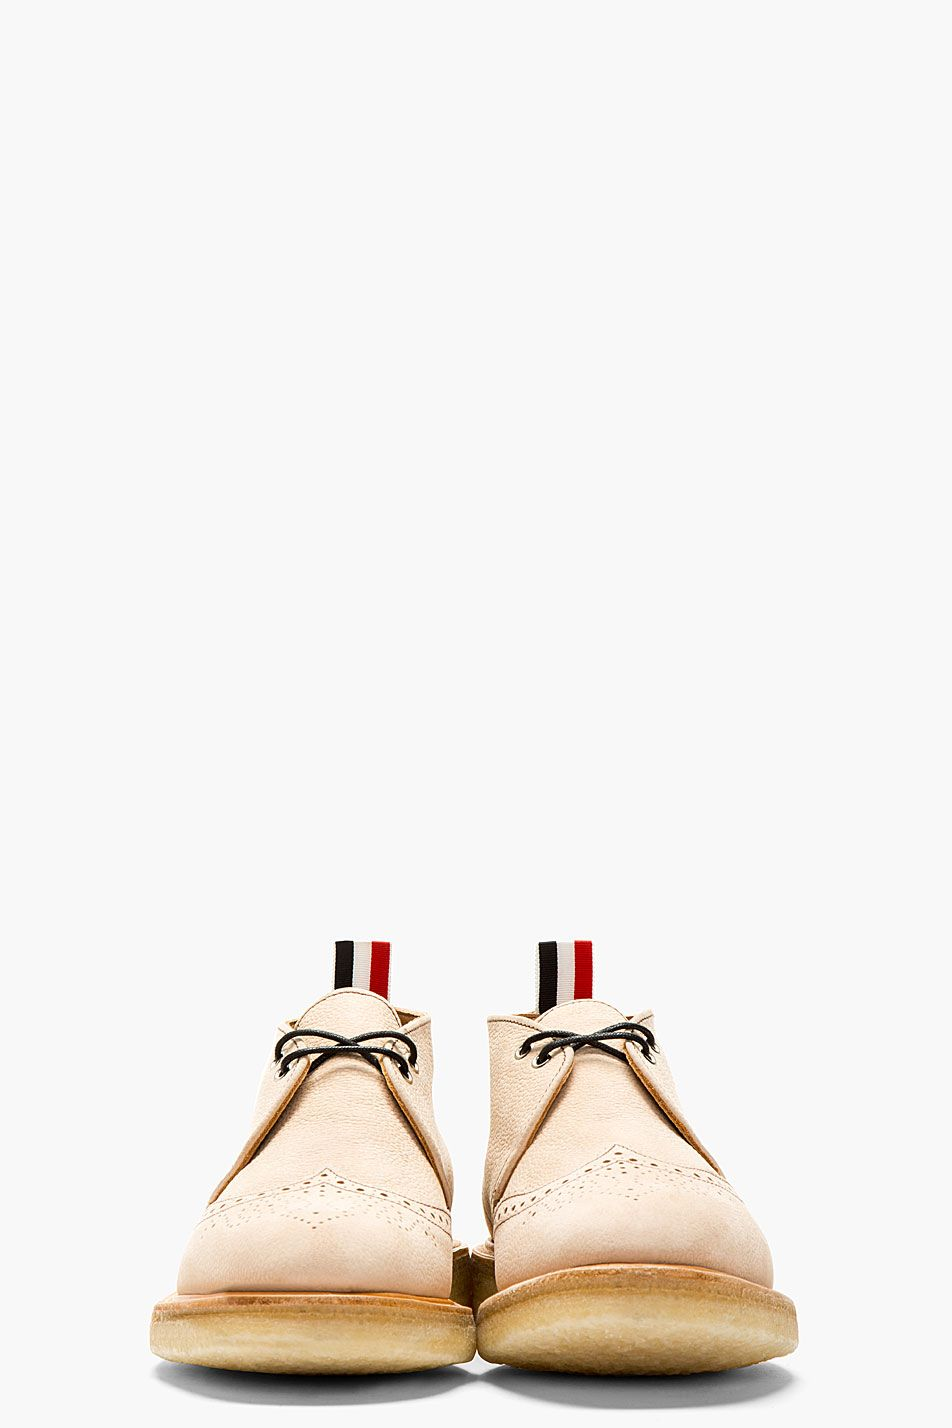 THOM BROWNE Tan Leather Brogued Desert Boots